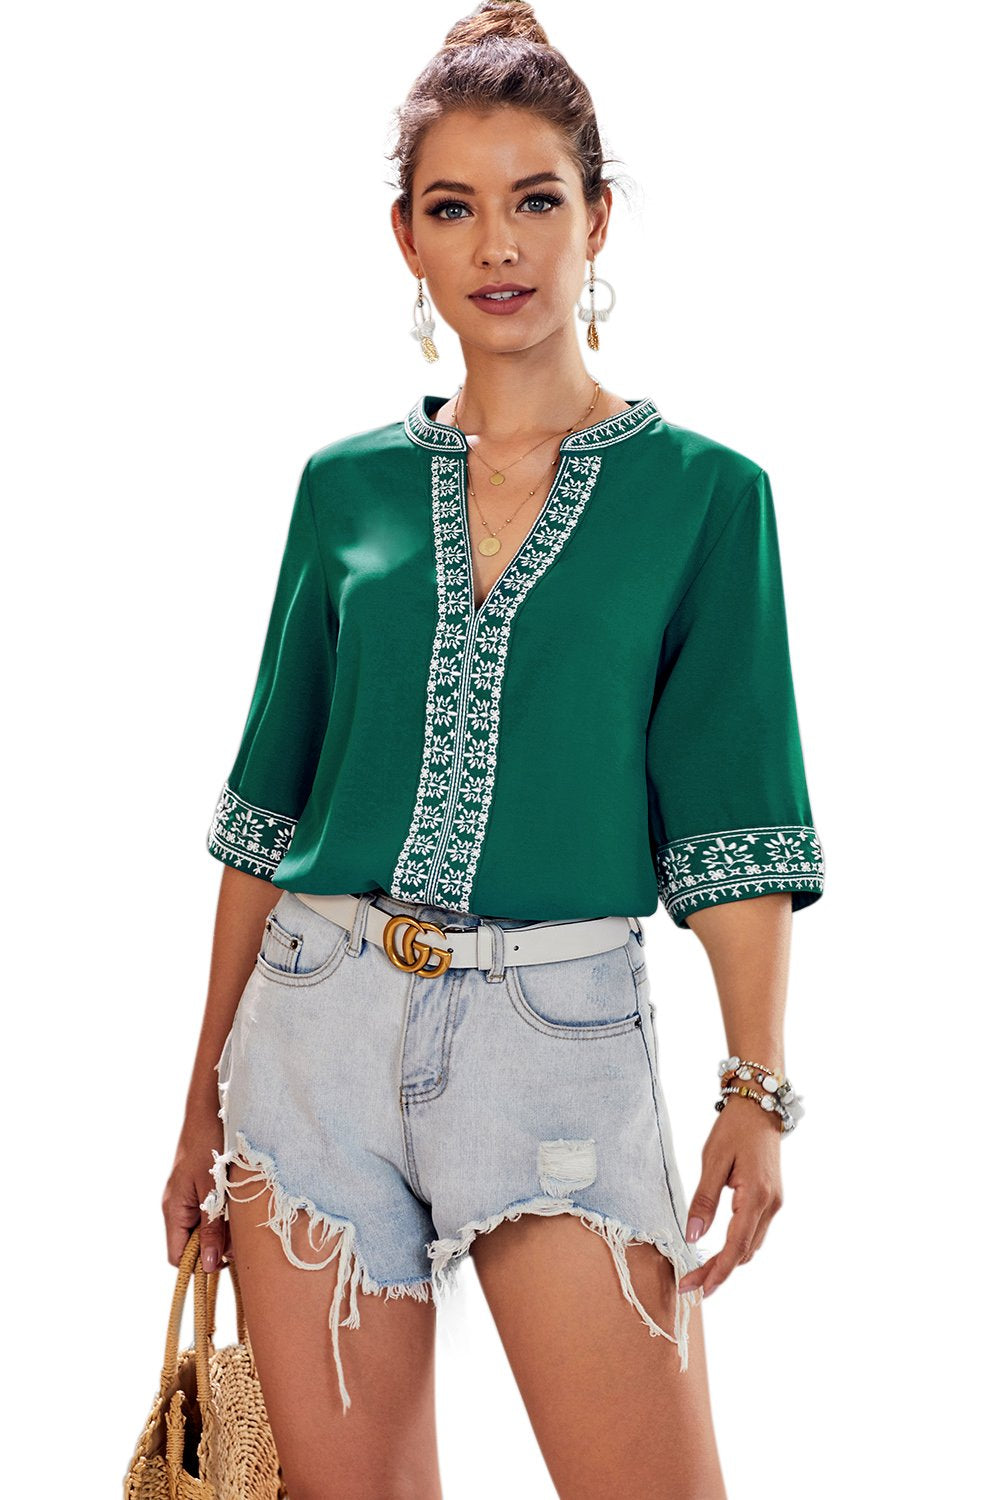 Green Chic Boho V Neckline Half Sleeve Blouse-Tops, Blouses & Shirts-Azura Exchange